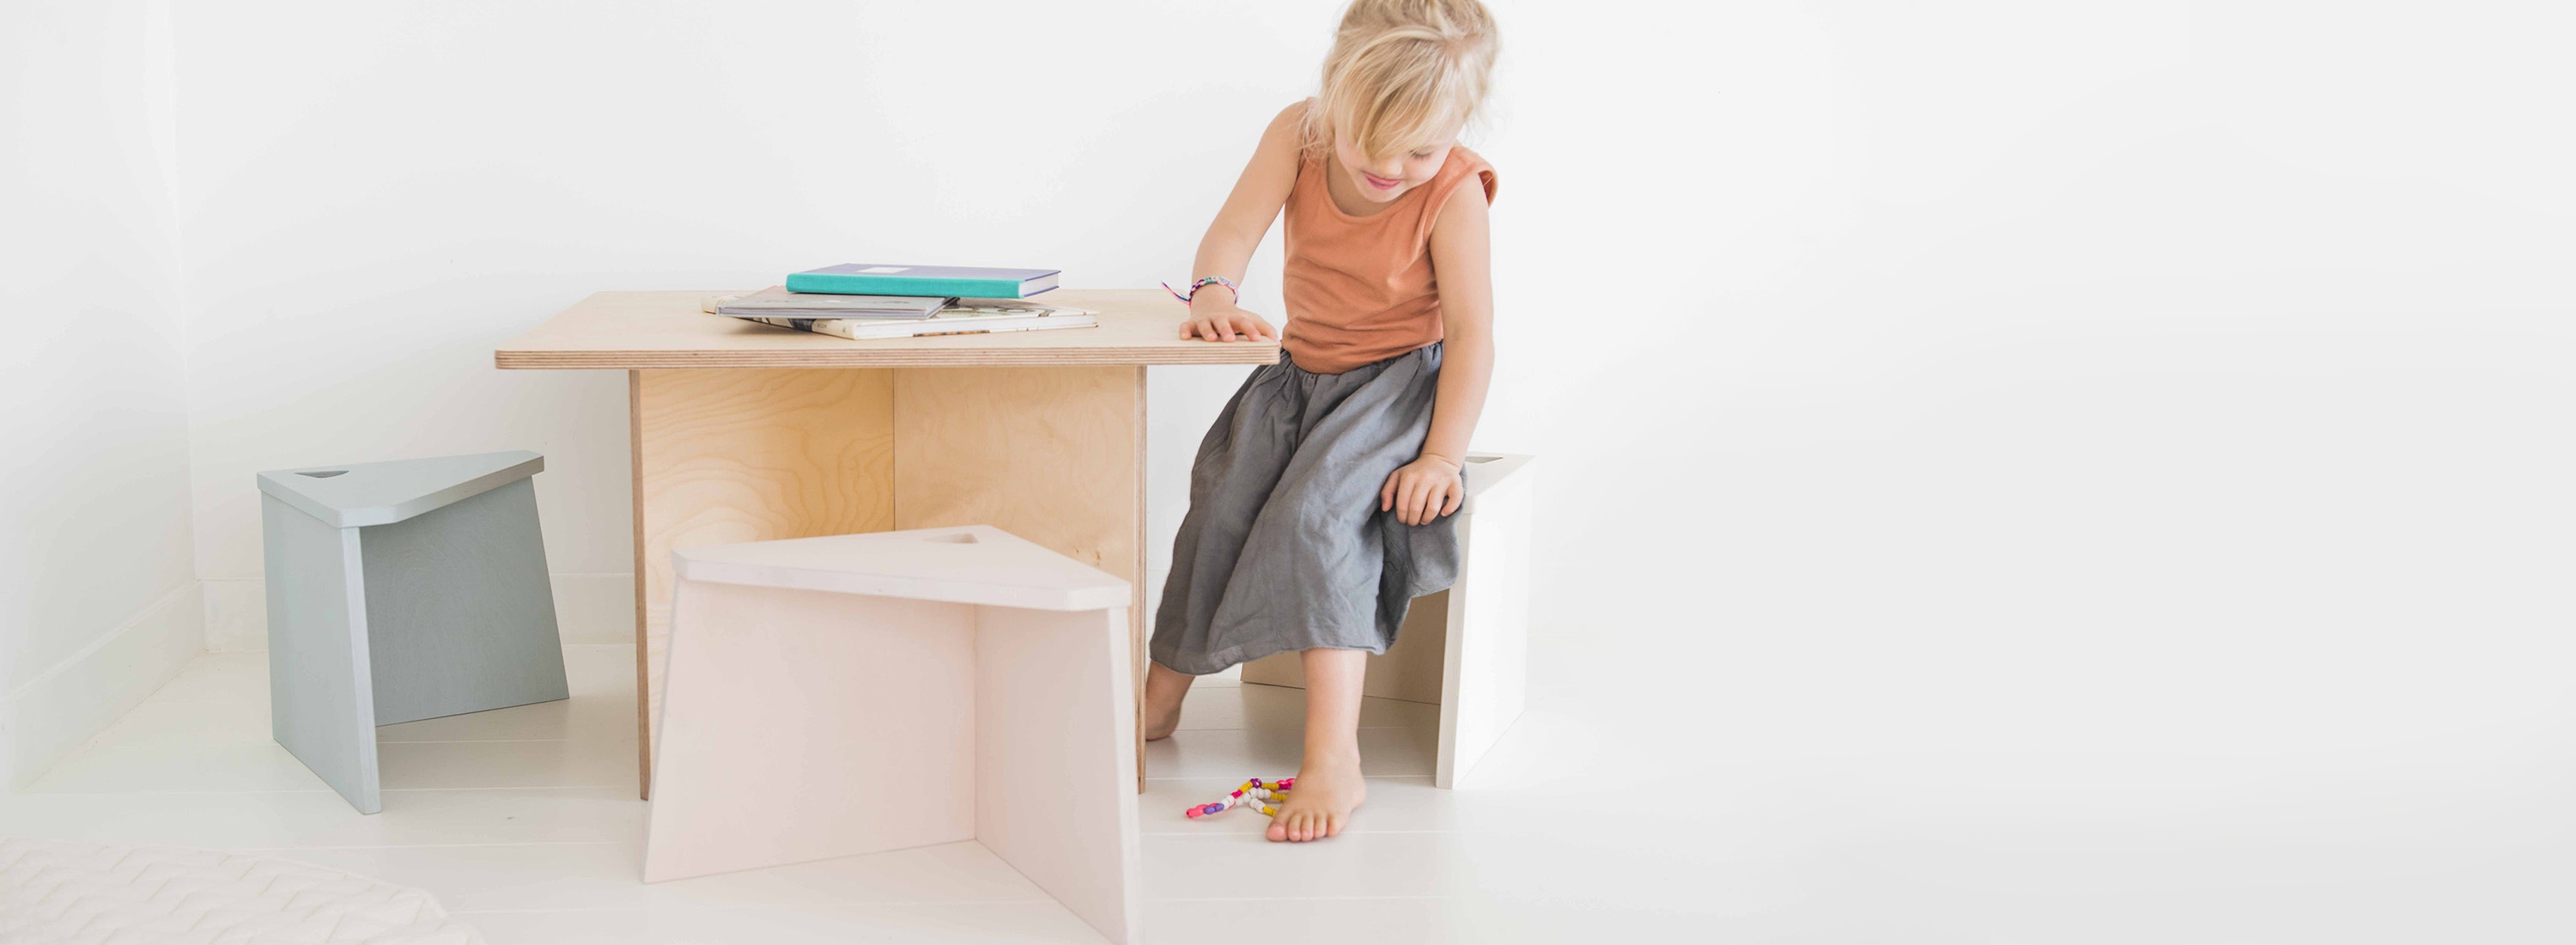 Timmer Atelje Kids Furniture Design